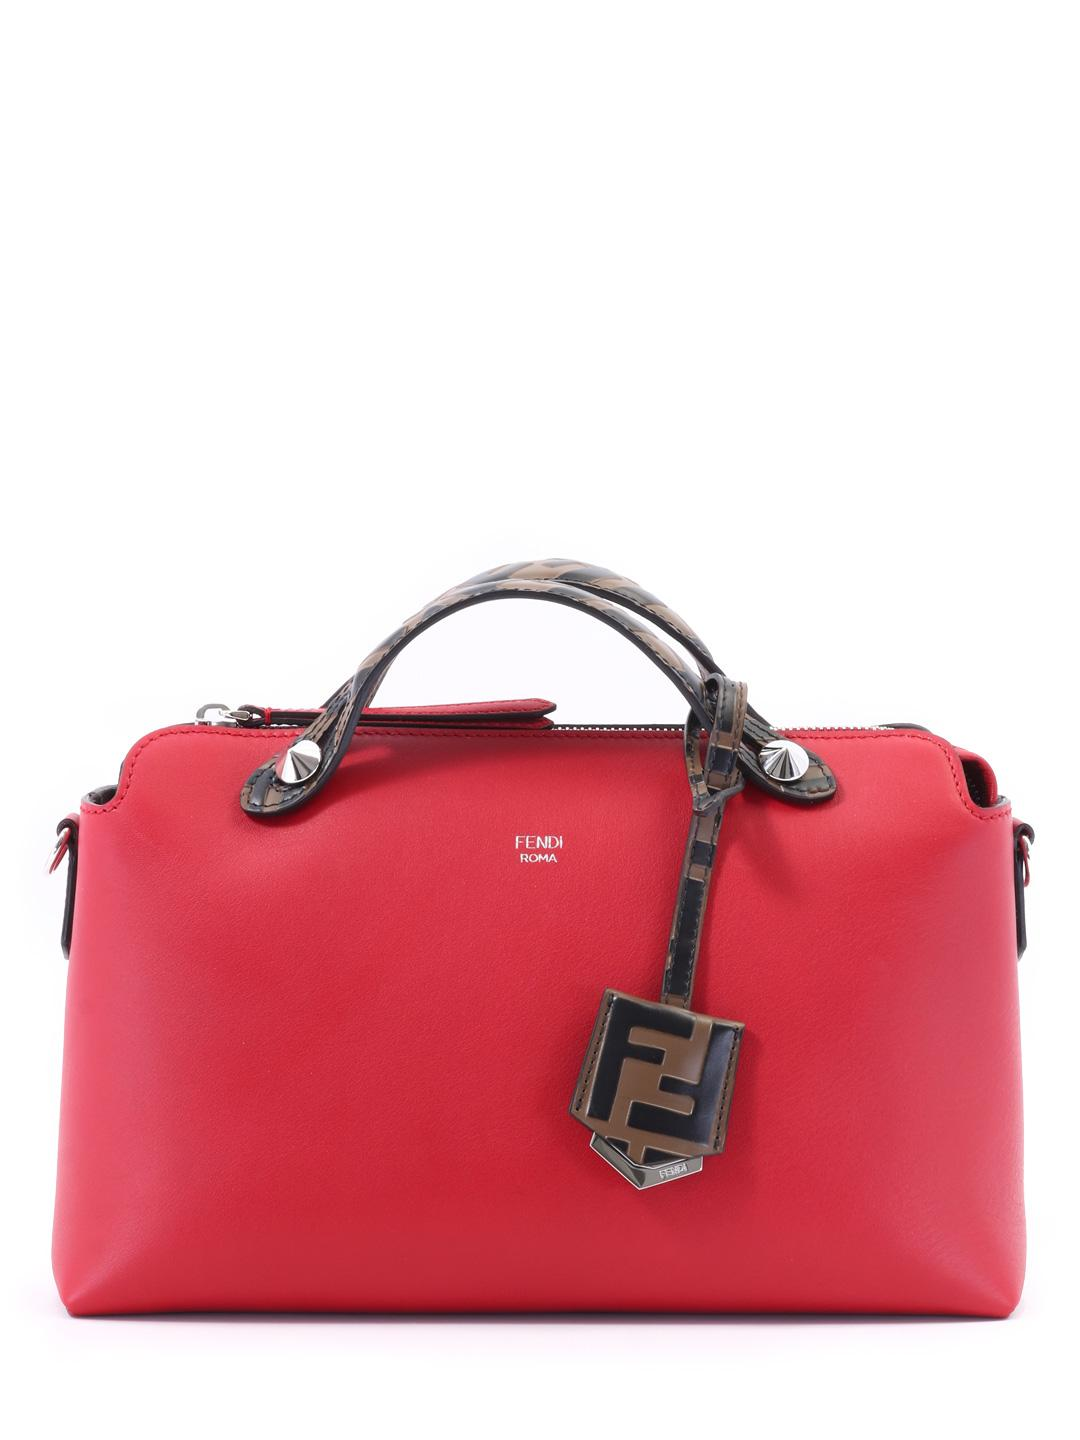 6be775855e Lyst - Fendi Bag By The Way Red in Red